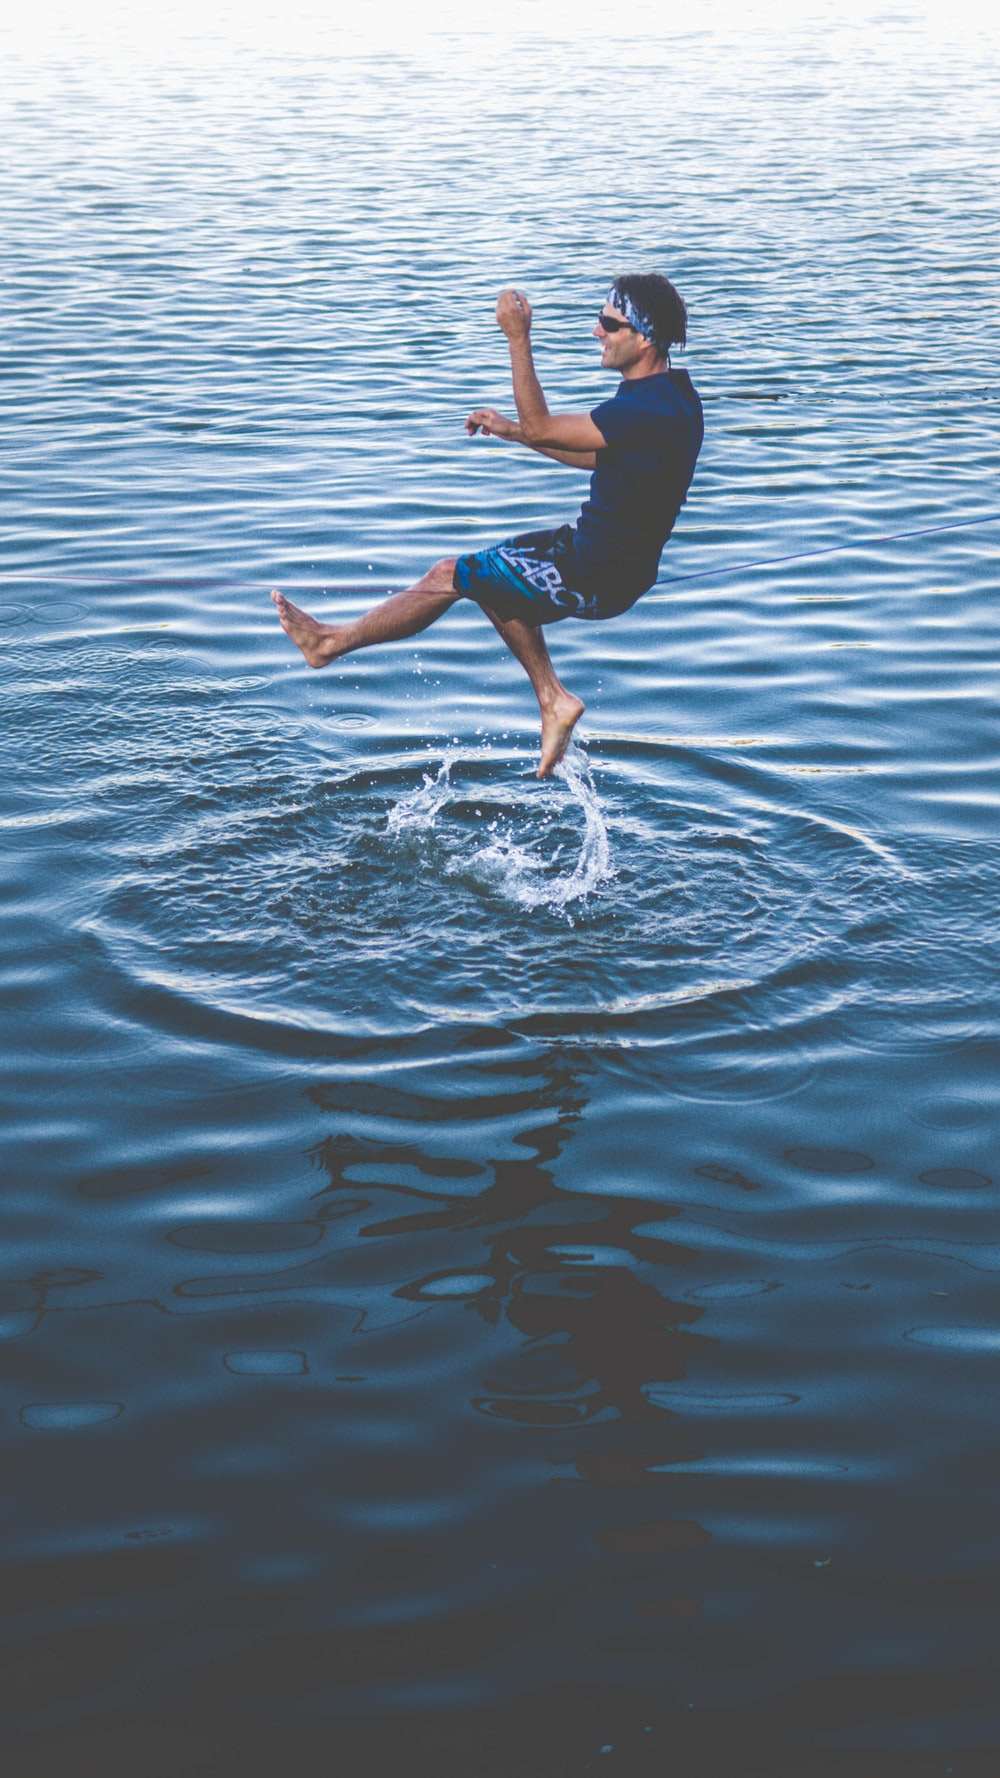 panning photograph of man on water